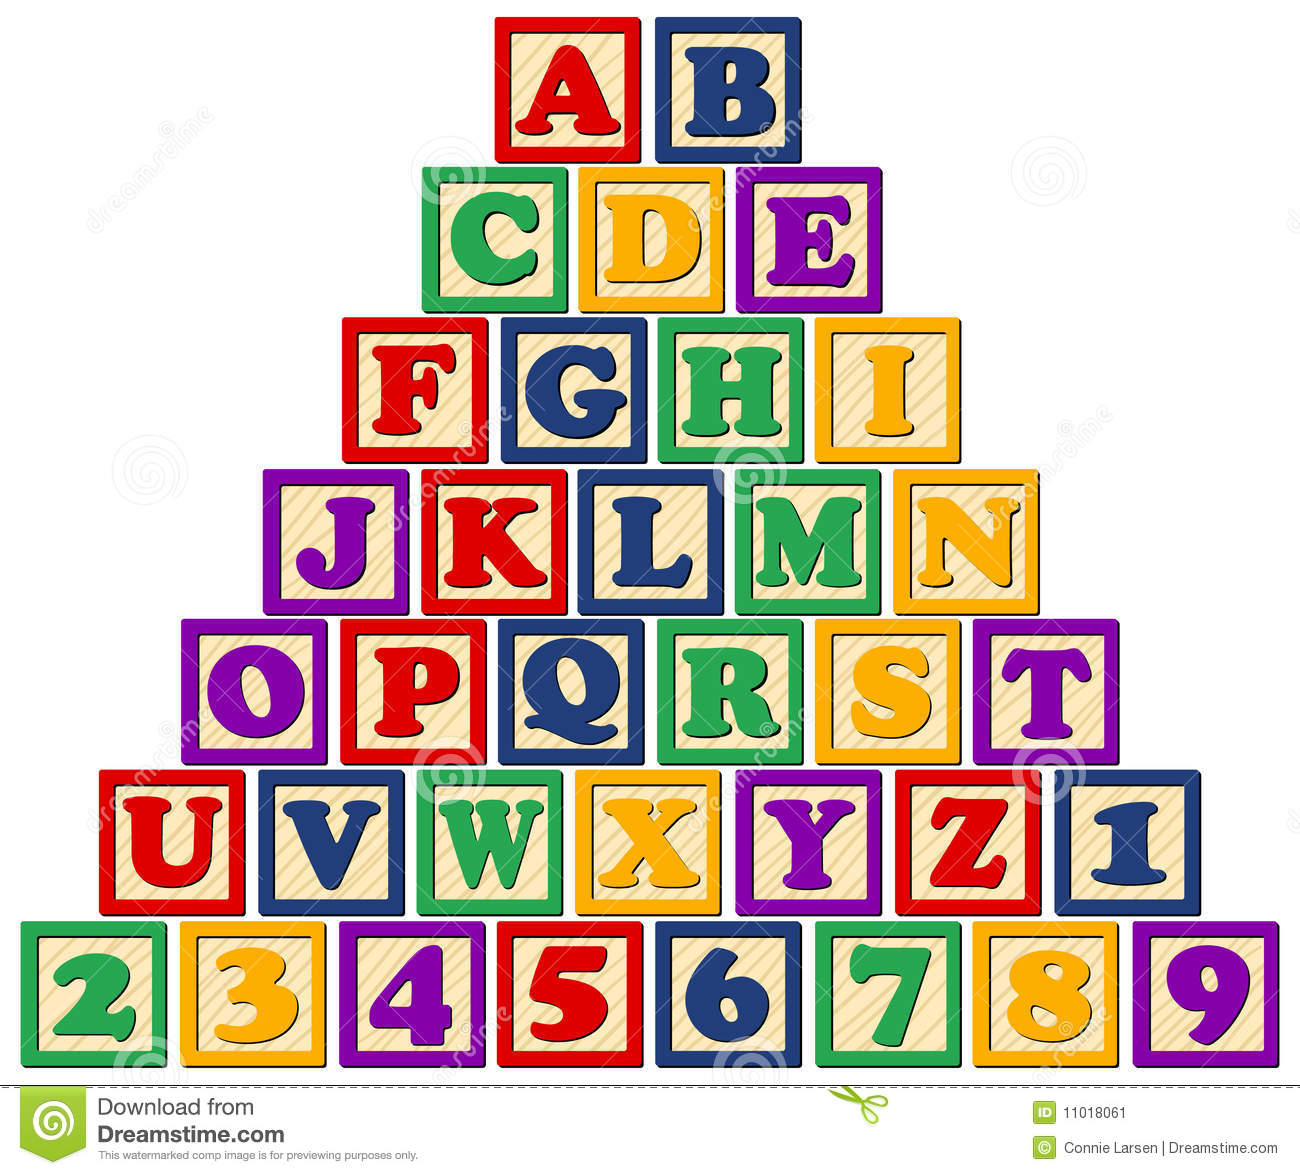 Clipartfest blockseps. Clipart of wooden blocks with alphabet letter